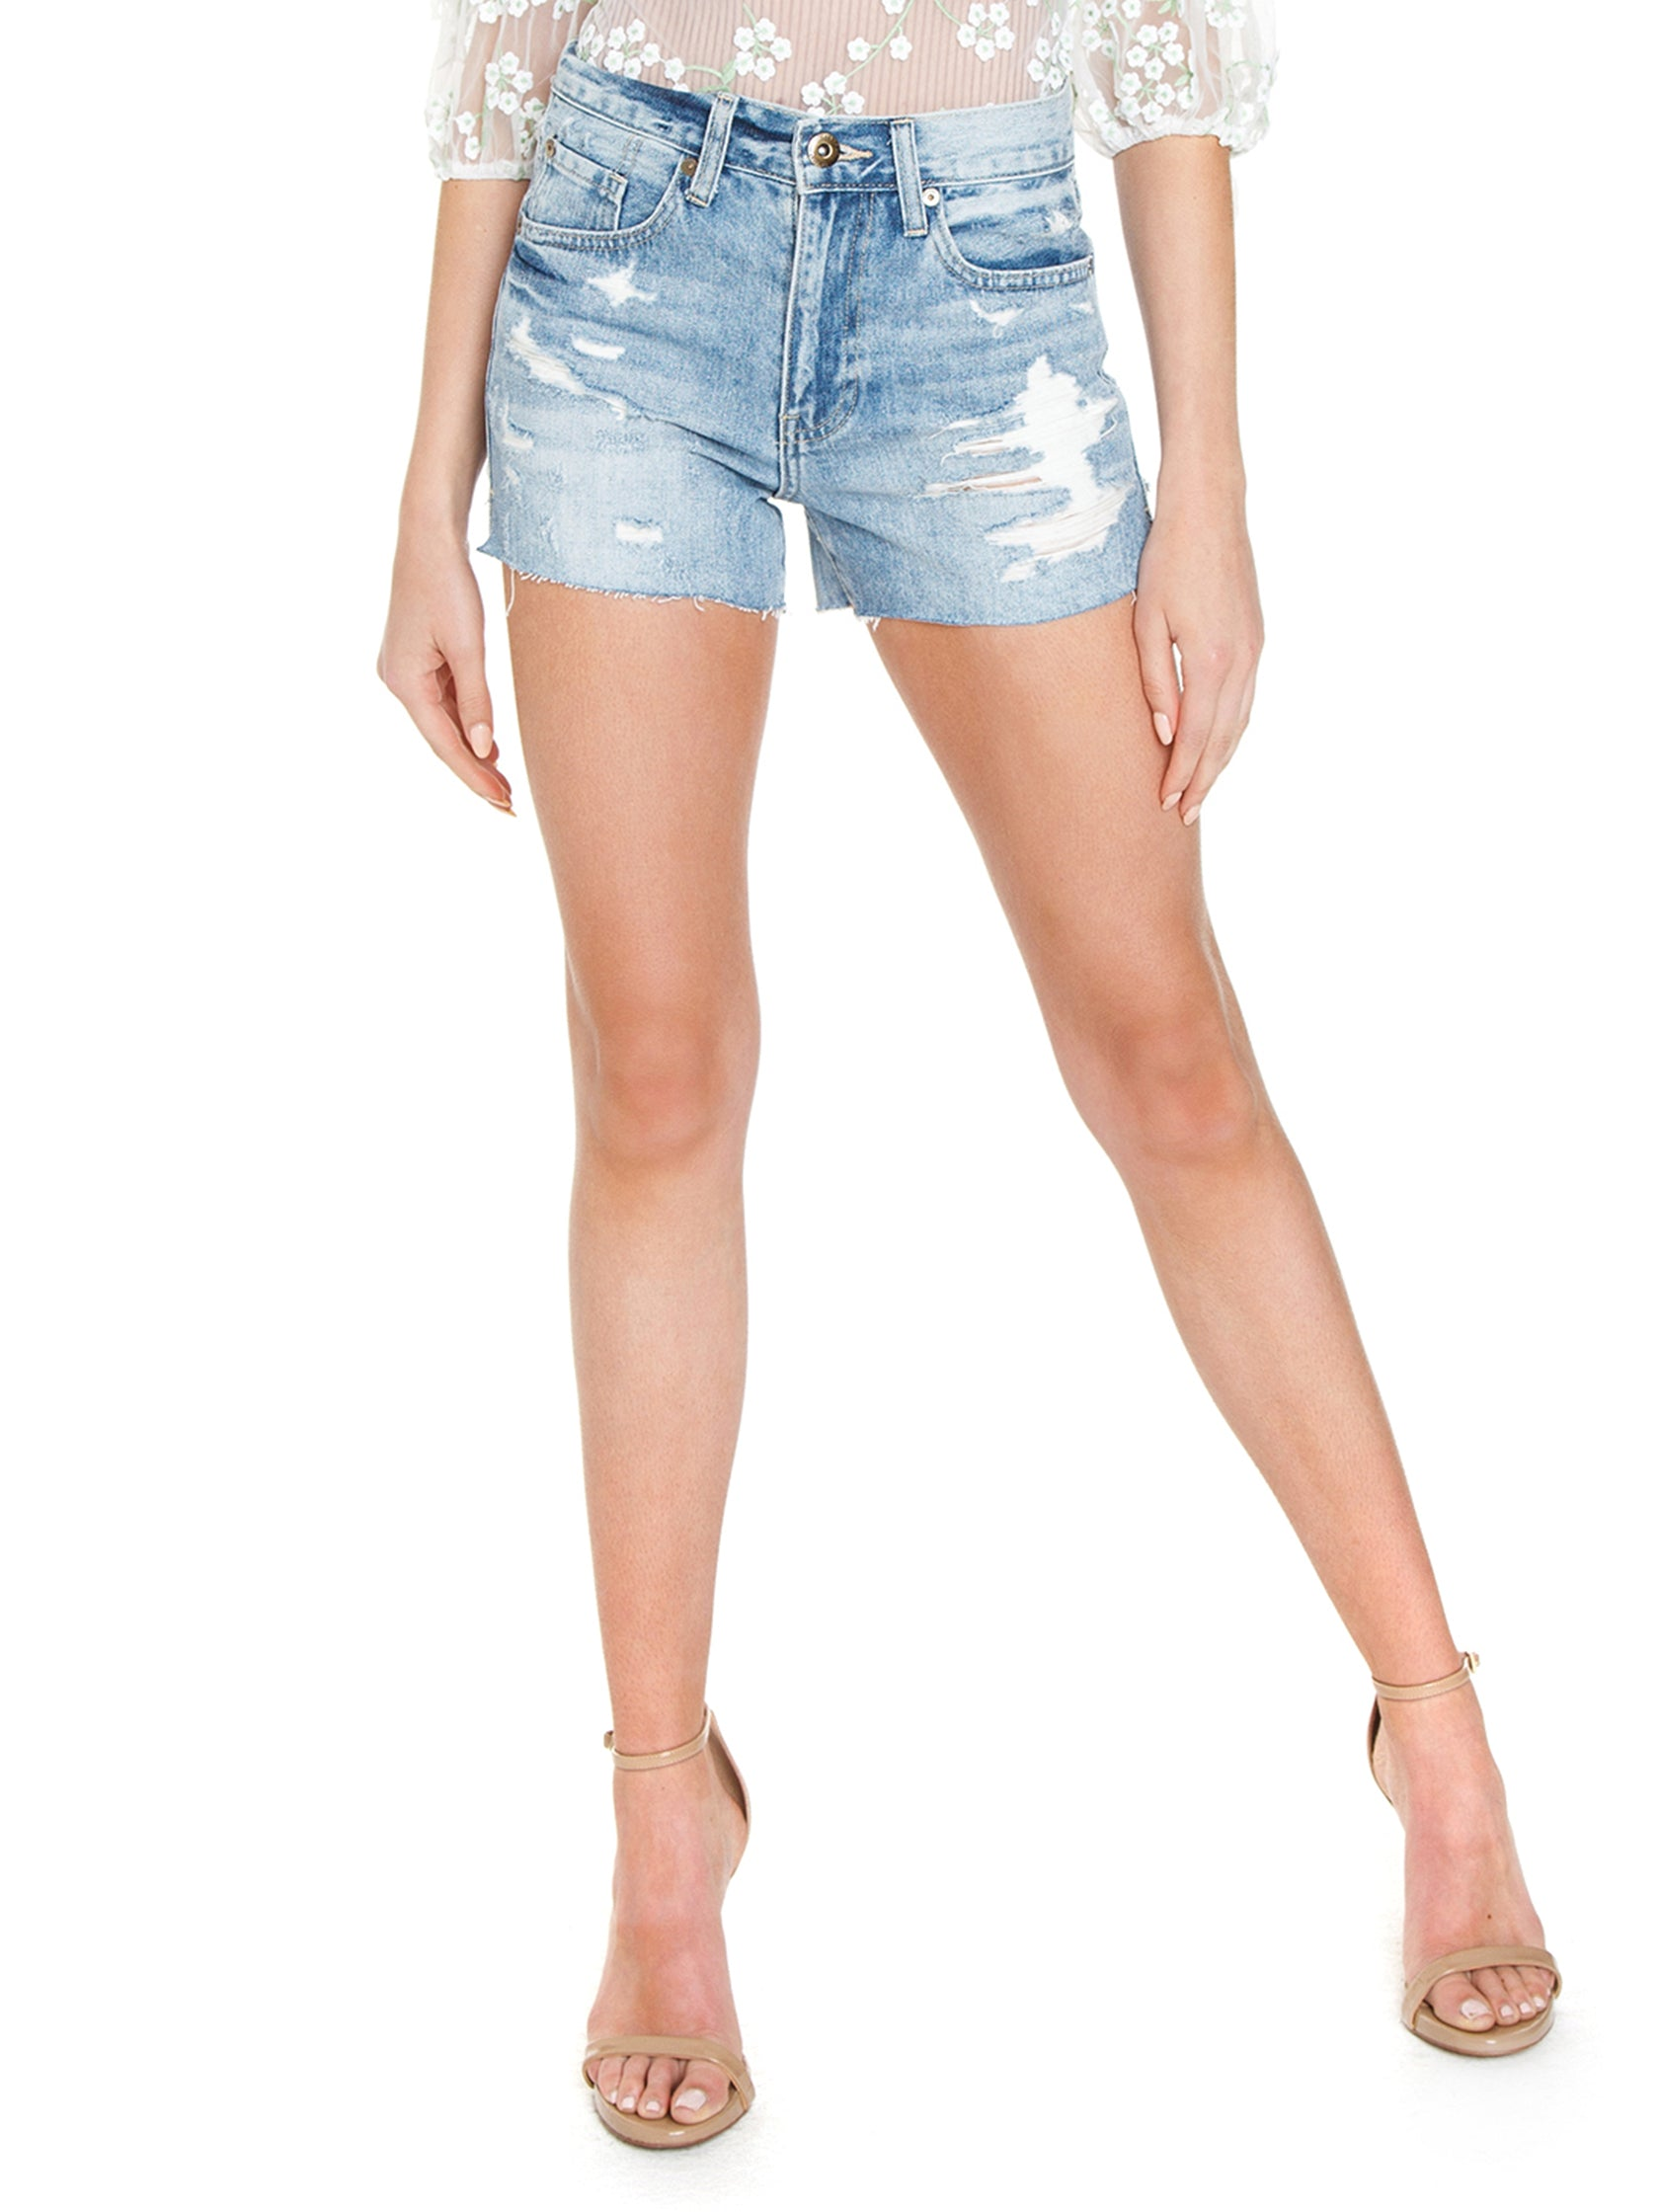 Woman wearing a shorts rental from PISTOLA called Santa Fe Shorts